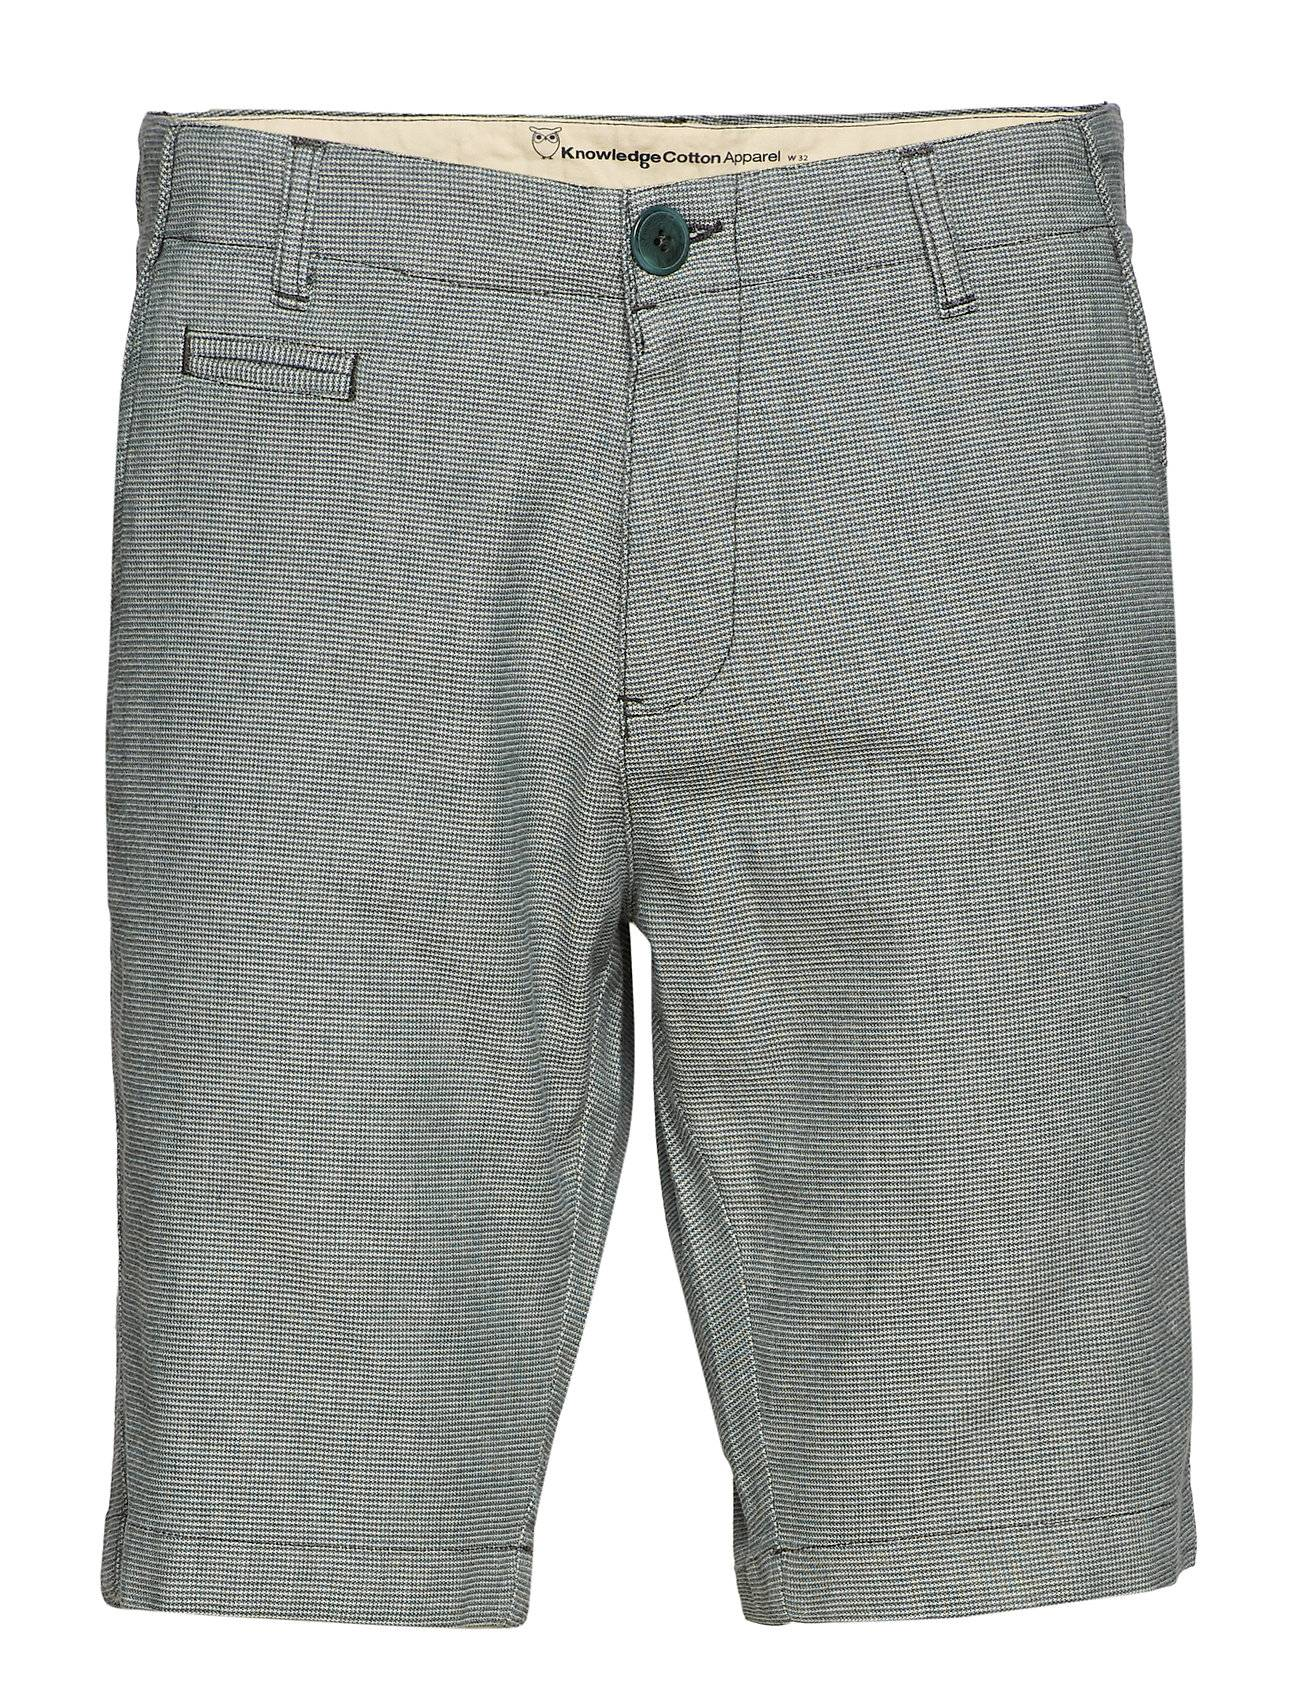 Knowledge Cotton Apparel Yarndyed 2-Col Stretched Shorts - G